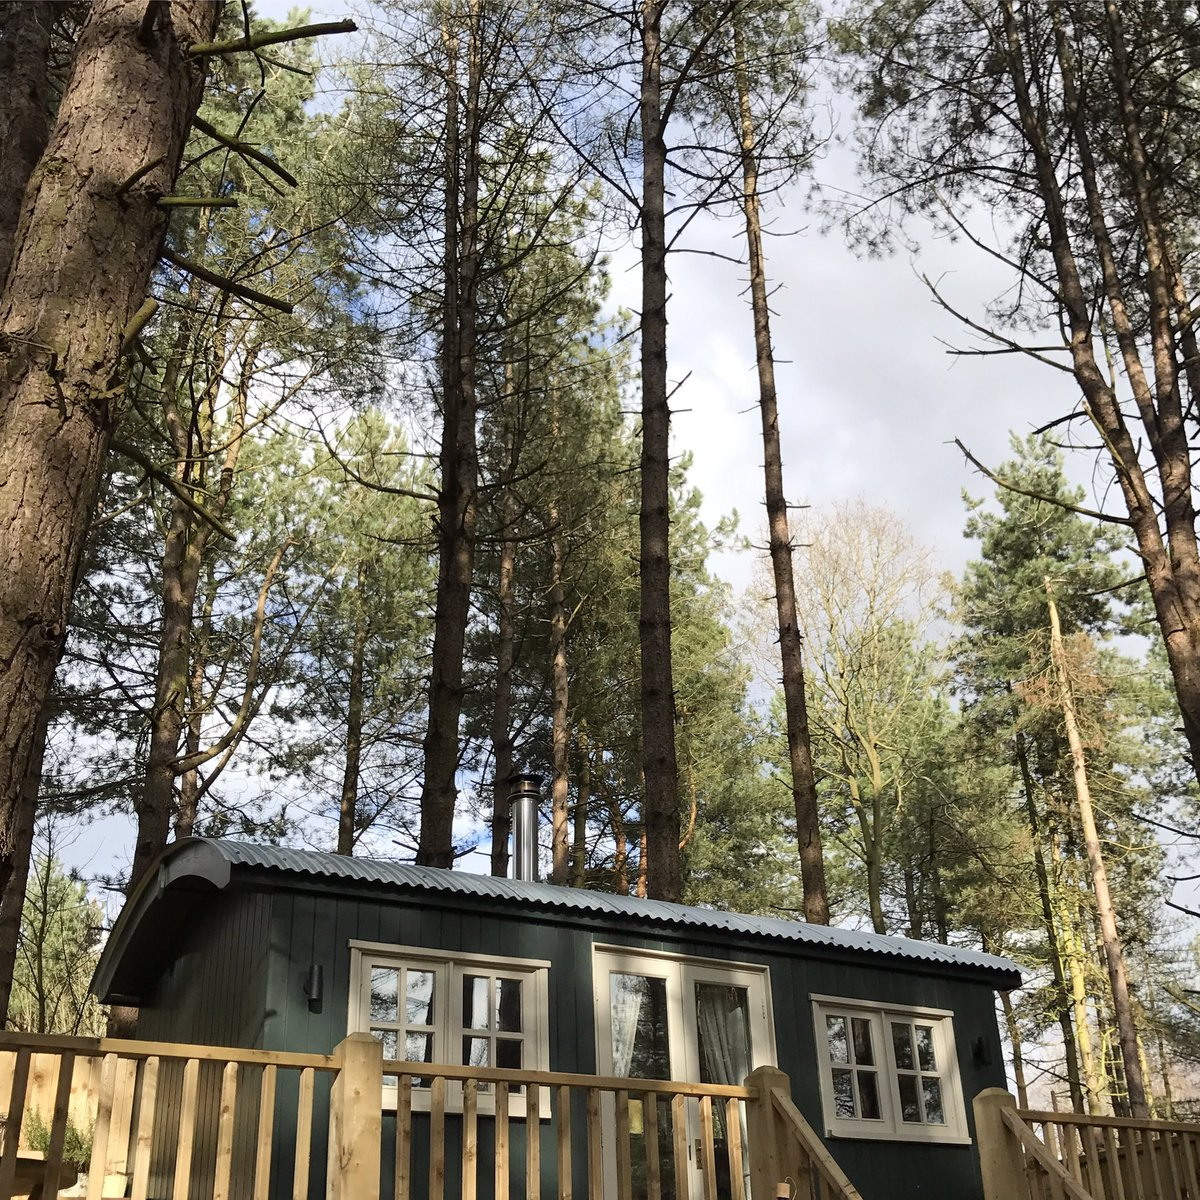 #glamping in #norfolk in February is still pretty special. #minibreak  #shepherdshut #forestbathing #visitnorfolk #boutiquecamping  #escapepic.twitter.com/ ...